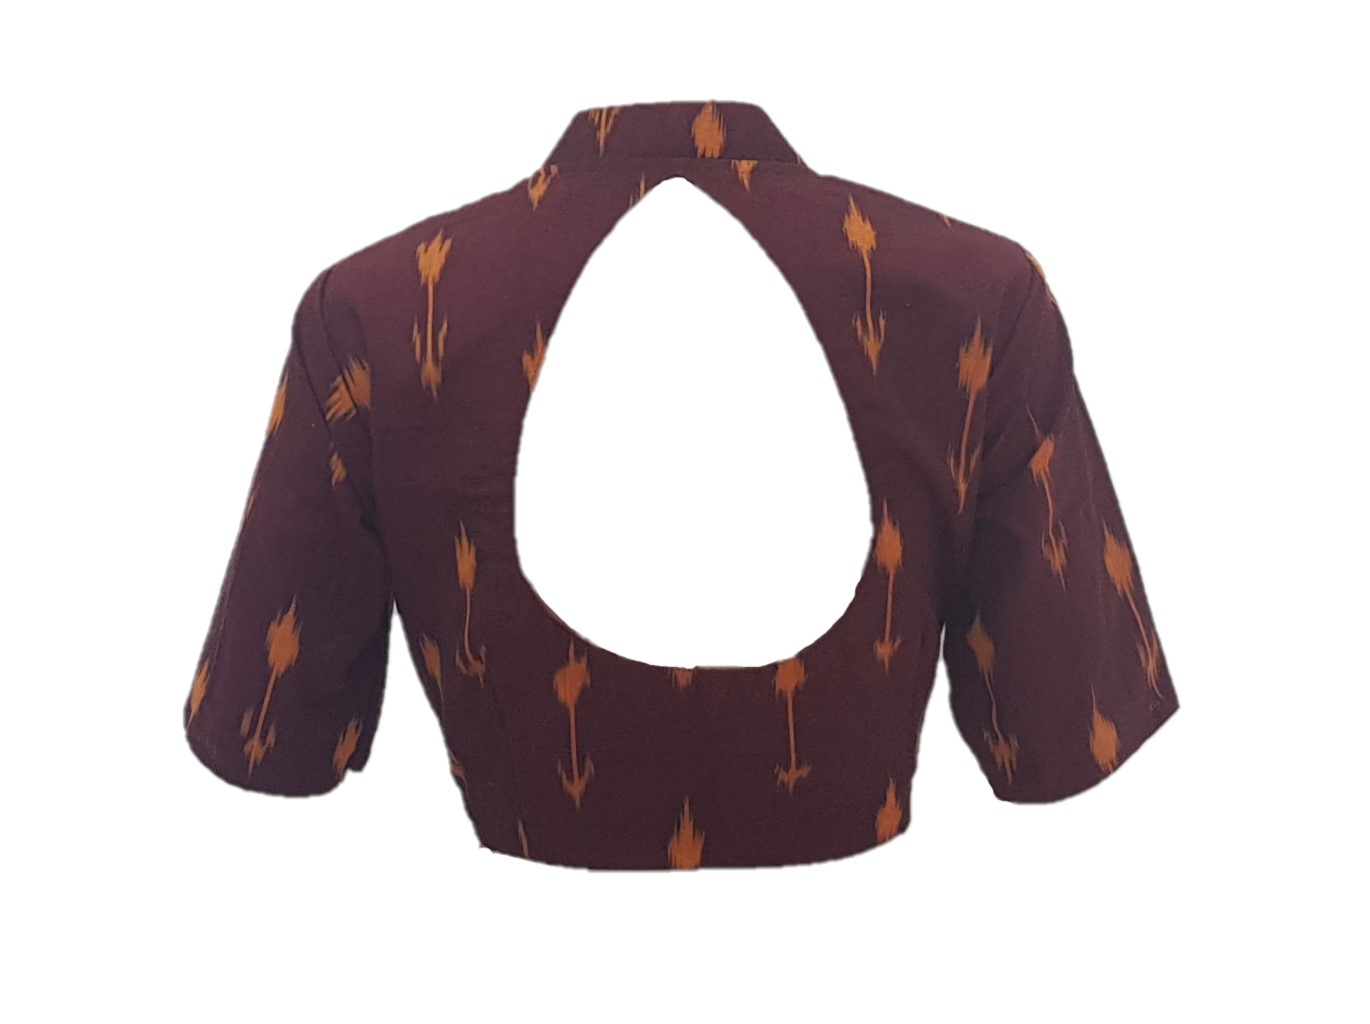 Pochampally Ikat Cotton Fabric Stand Collar Readymade Saree Blouse Brown Size Large : Picture